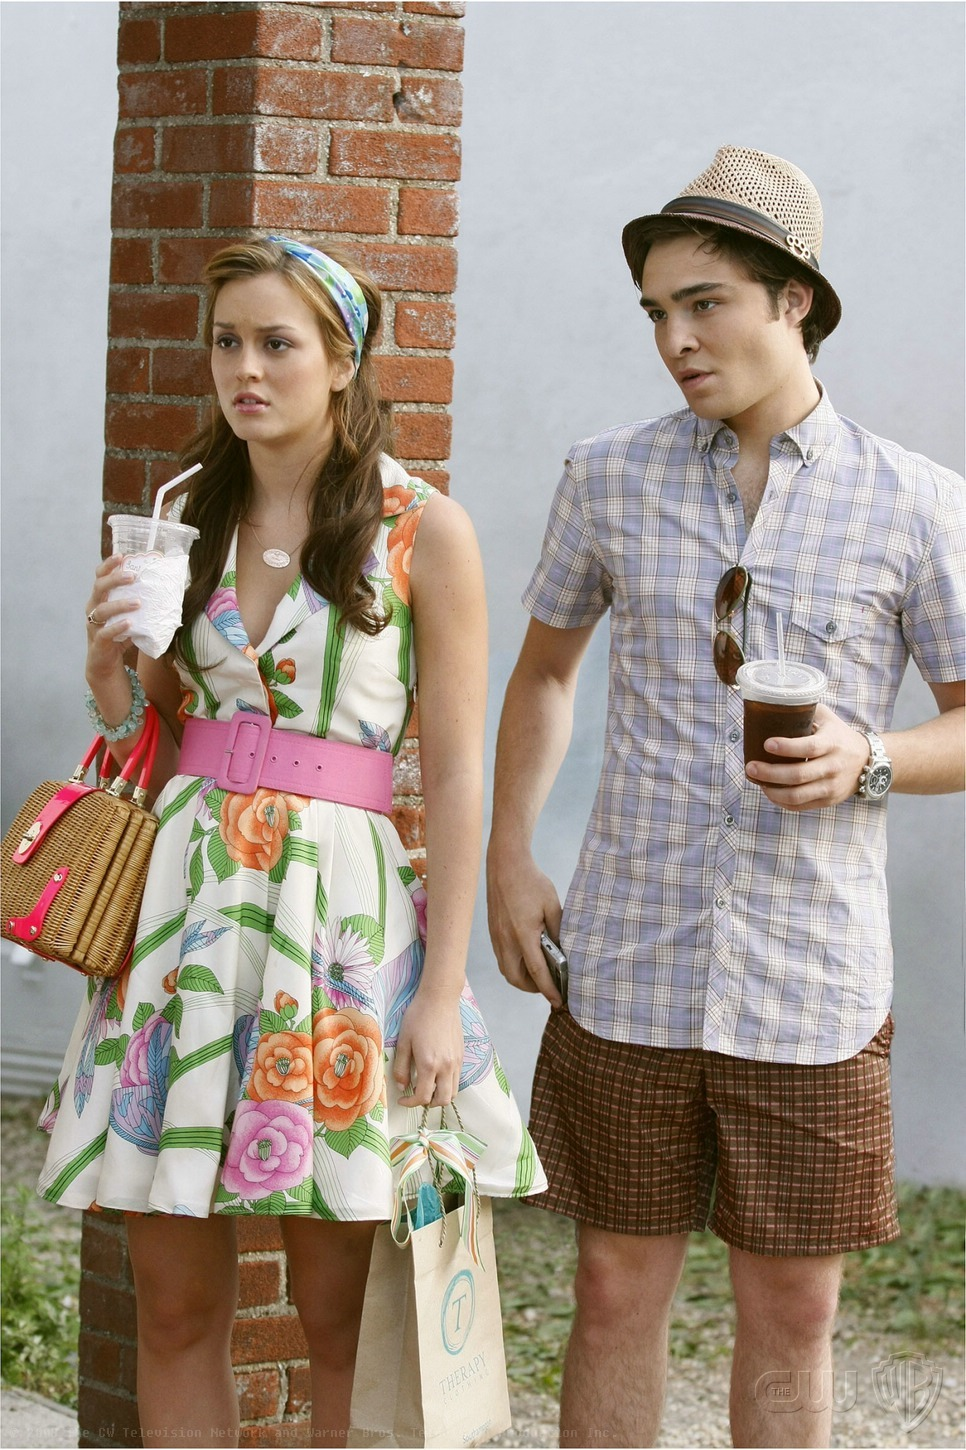 Better dress from Summer Kind of Wonderful? Poll Results - Blair Waldorf Fashion - Fanpop